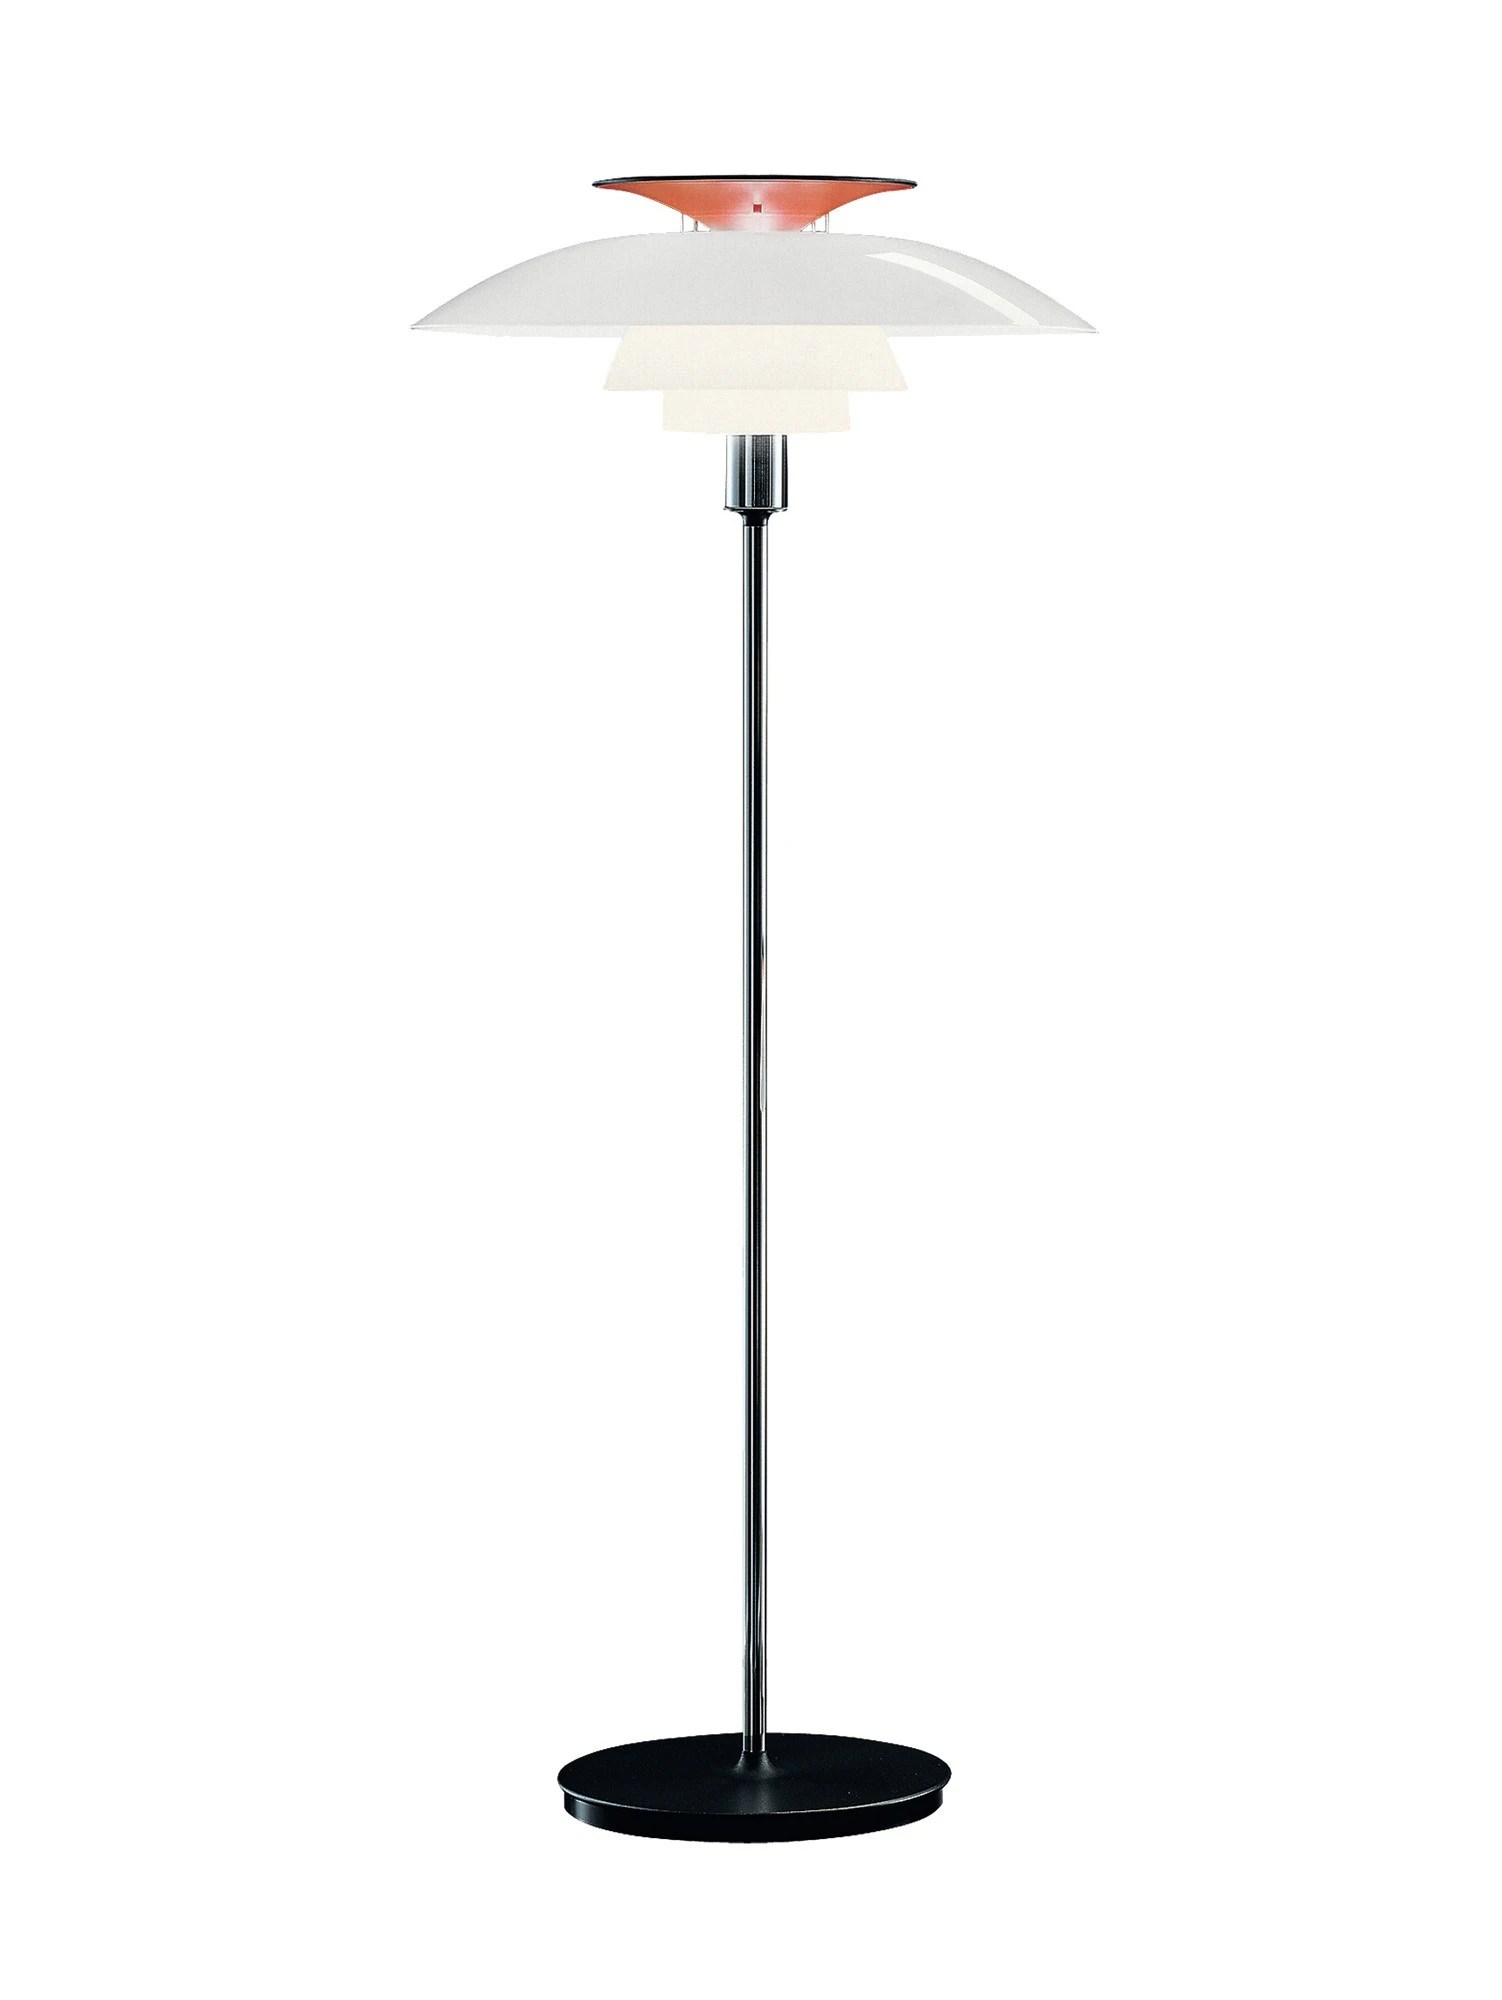 Pedestal Floor Lamps Louis Poulsen Ph 80 Floor Lamp